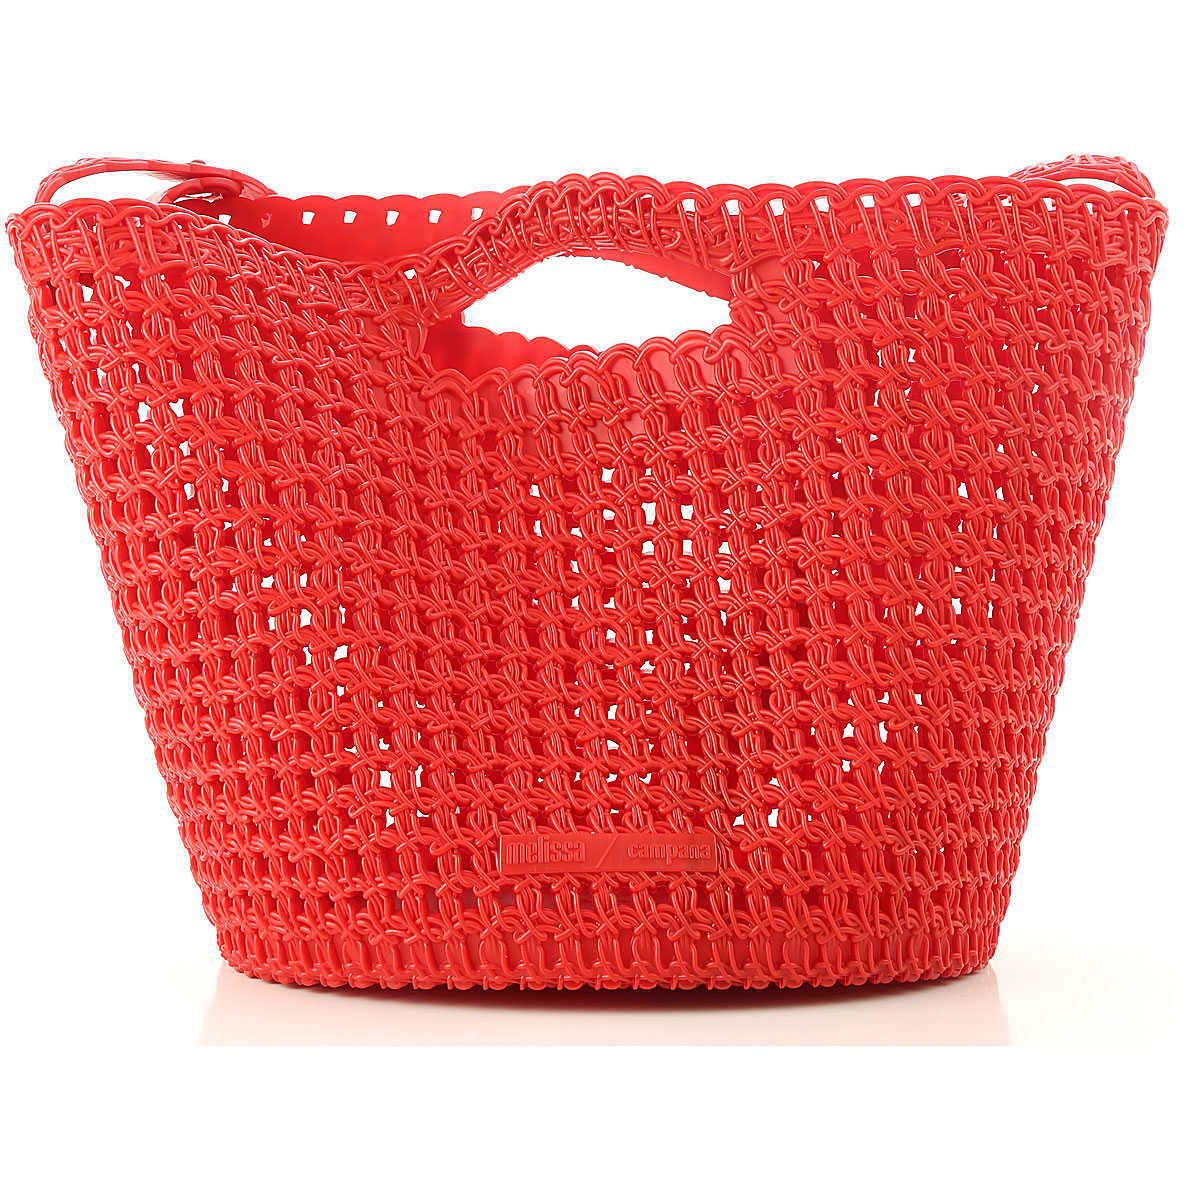 Melissa Tote Bag On Sale Red DK - GOOFASH - Womens BAGS